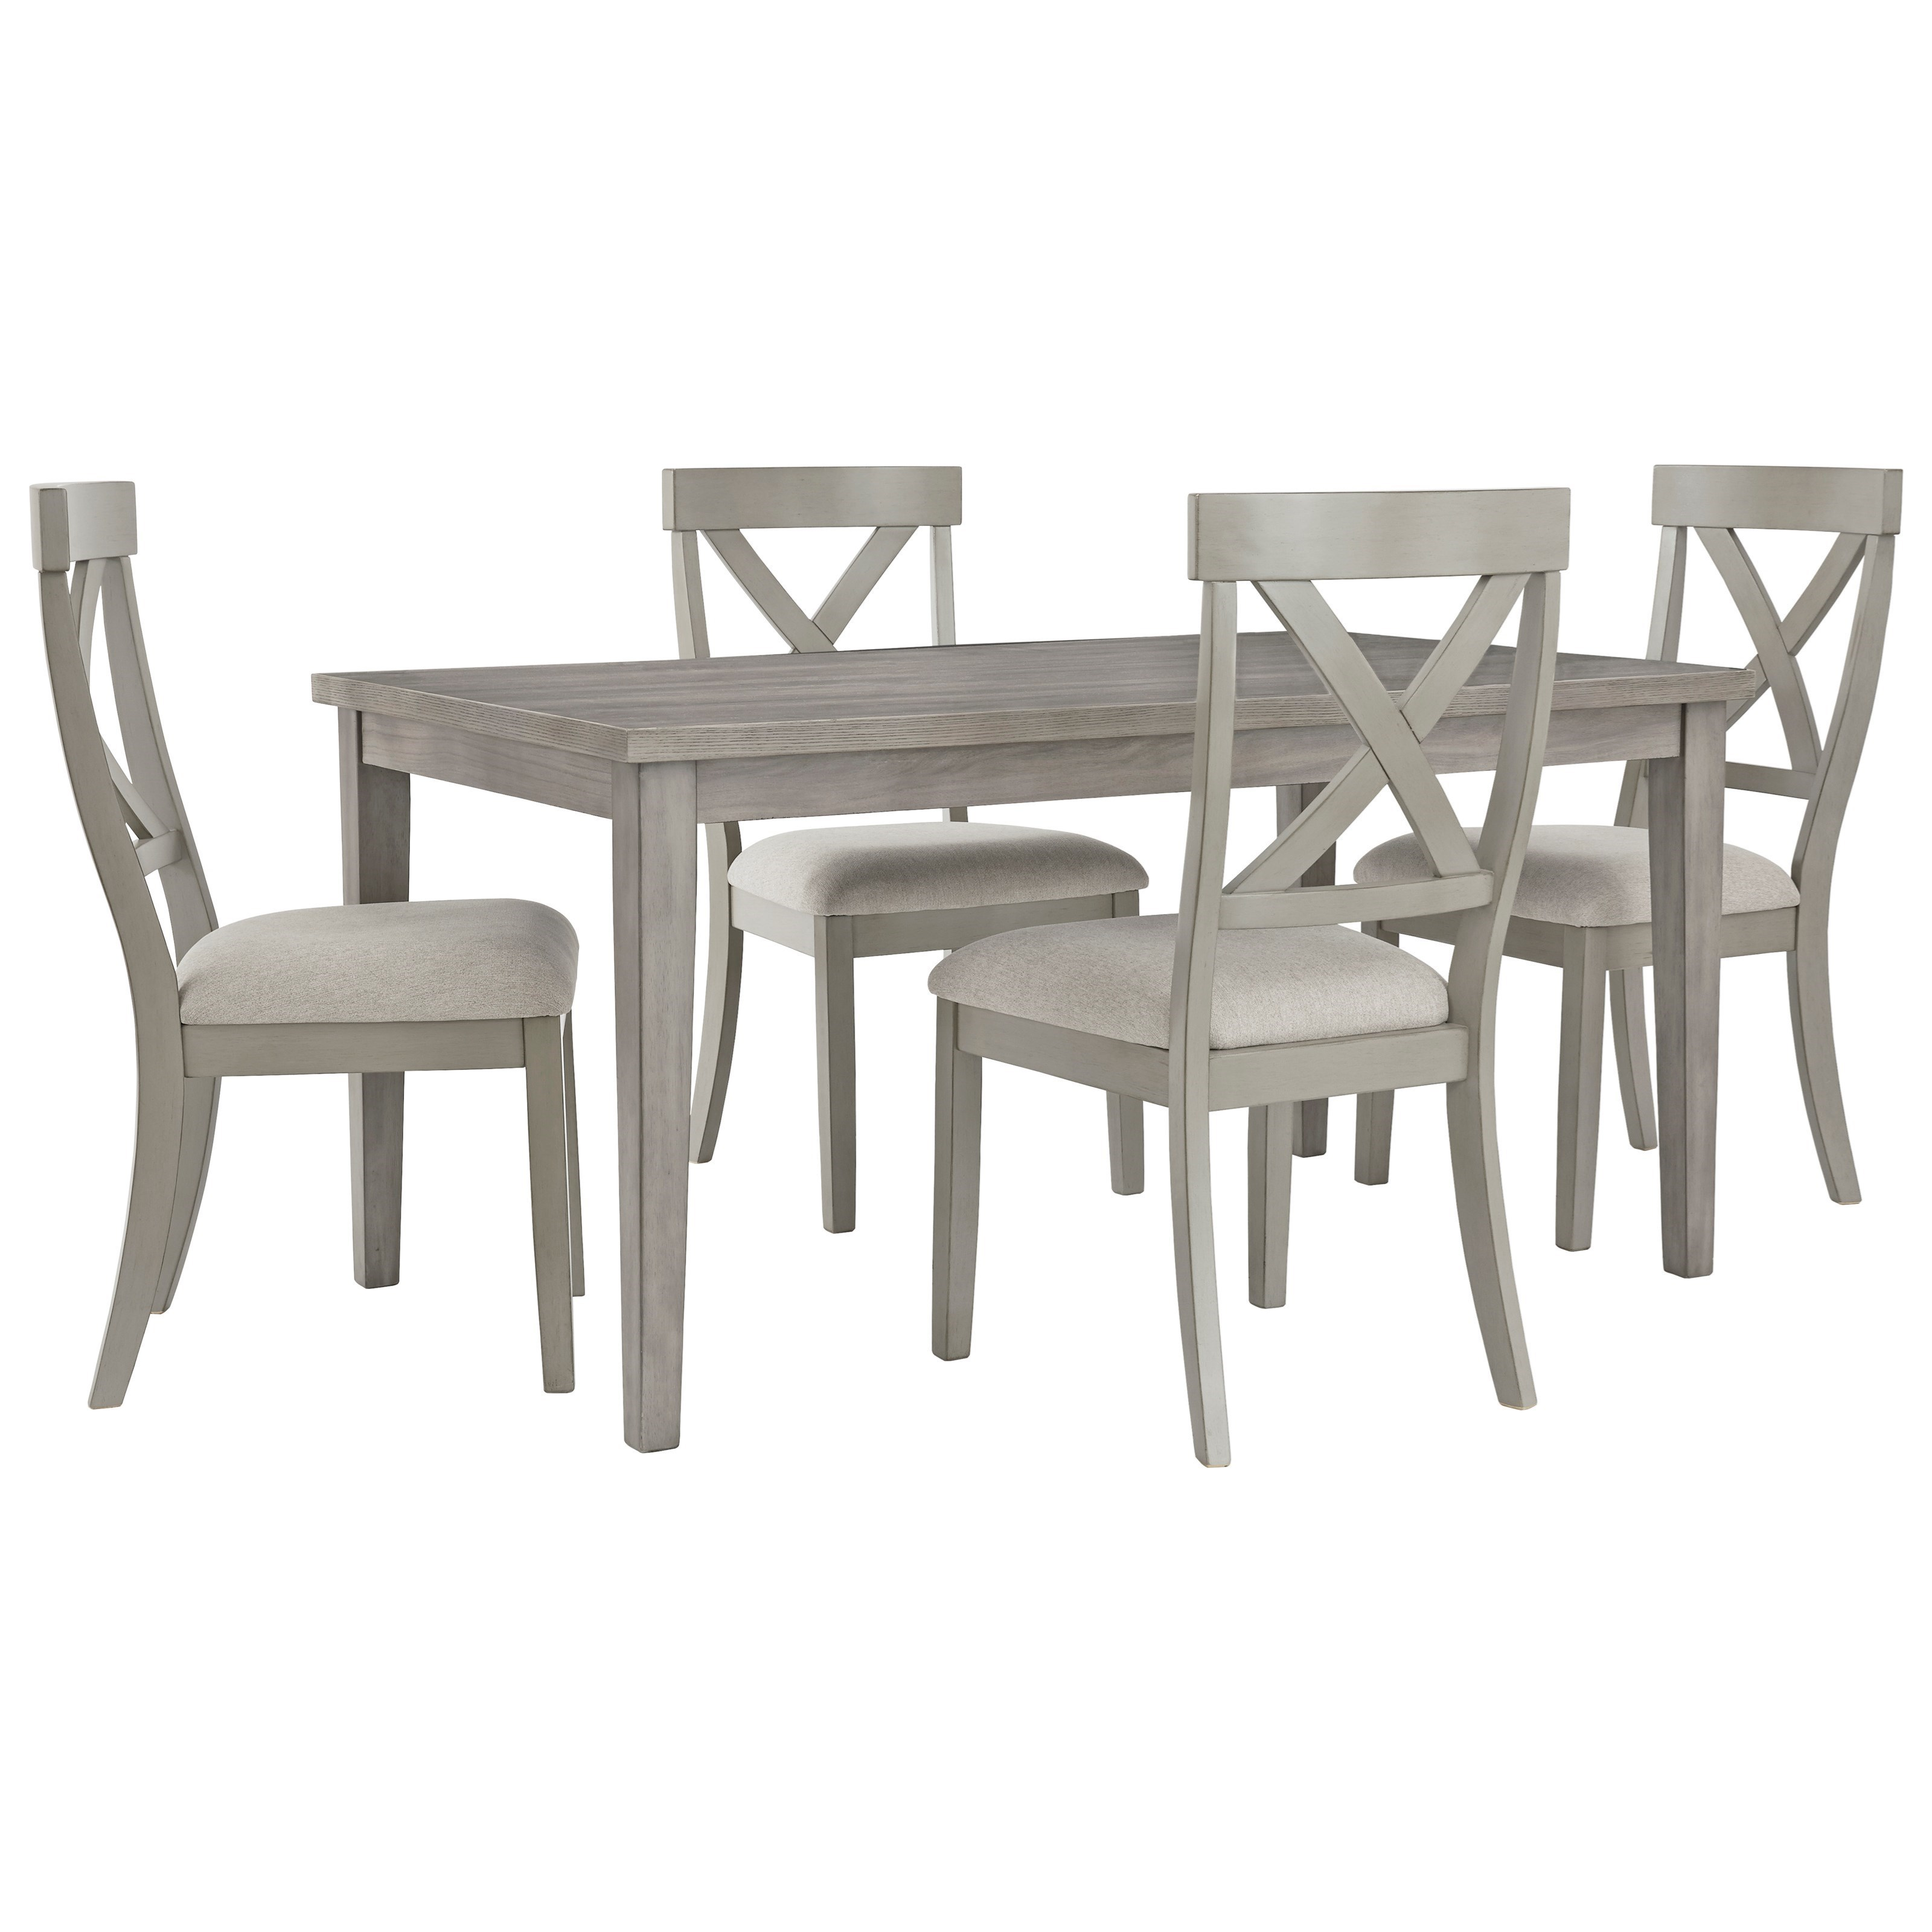 Parellen 5-Piece Table and Chair Set by Signature Design by Ashley at Northeast Factory Direct